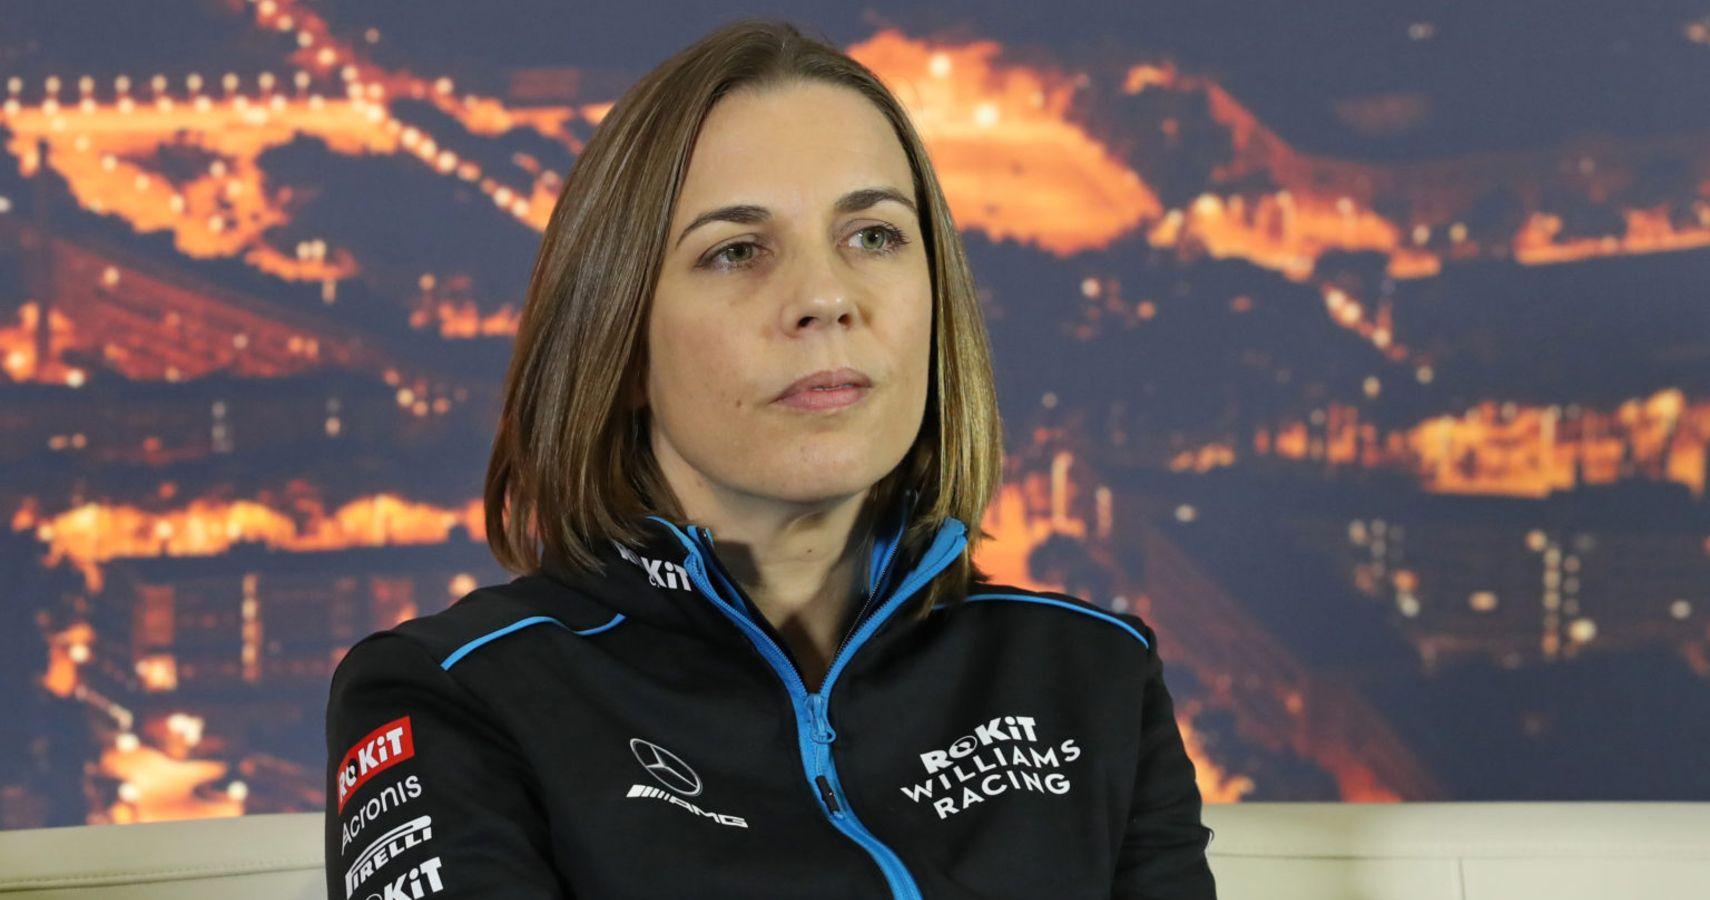 Williams Family Steps Down From Running F1 Team